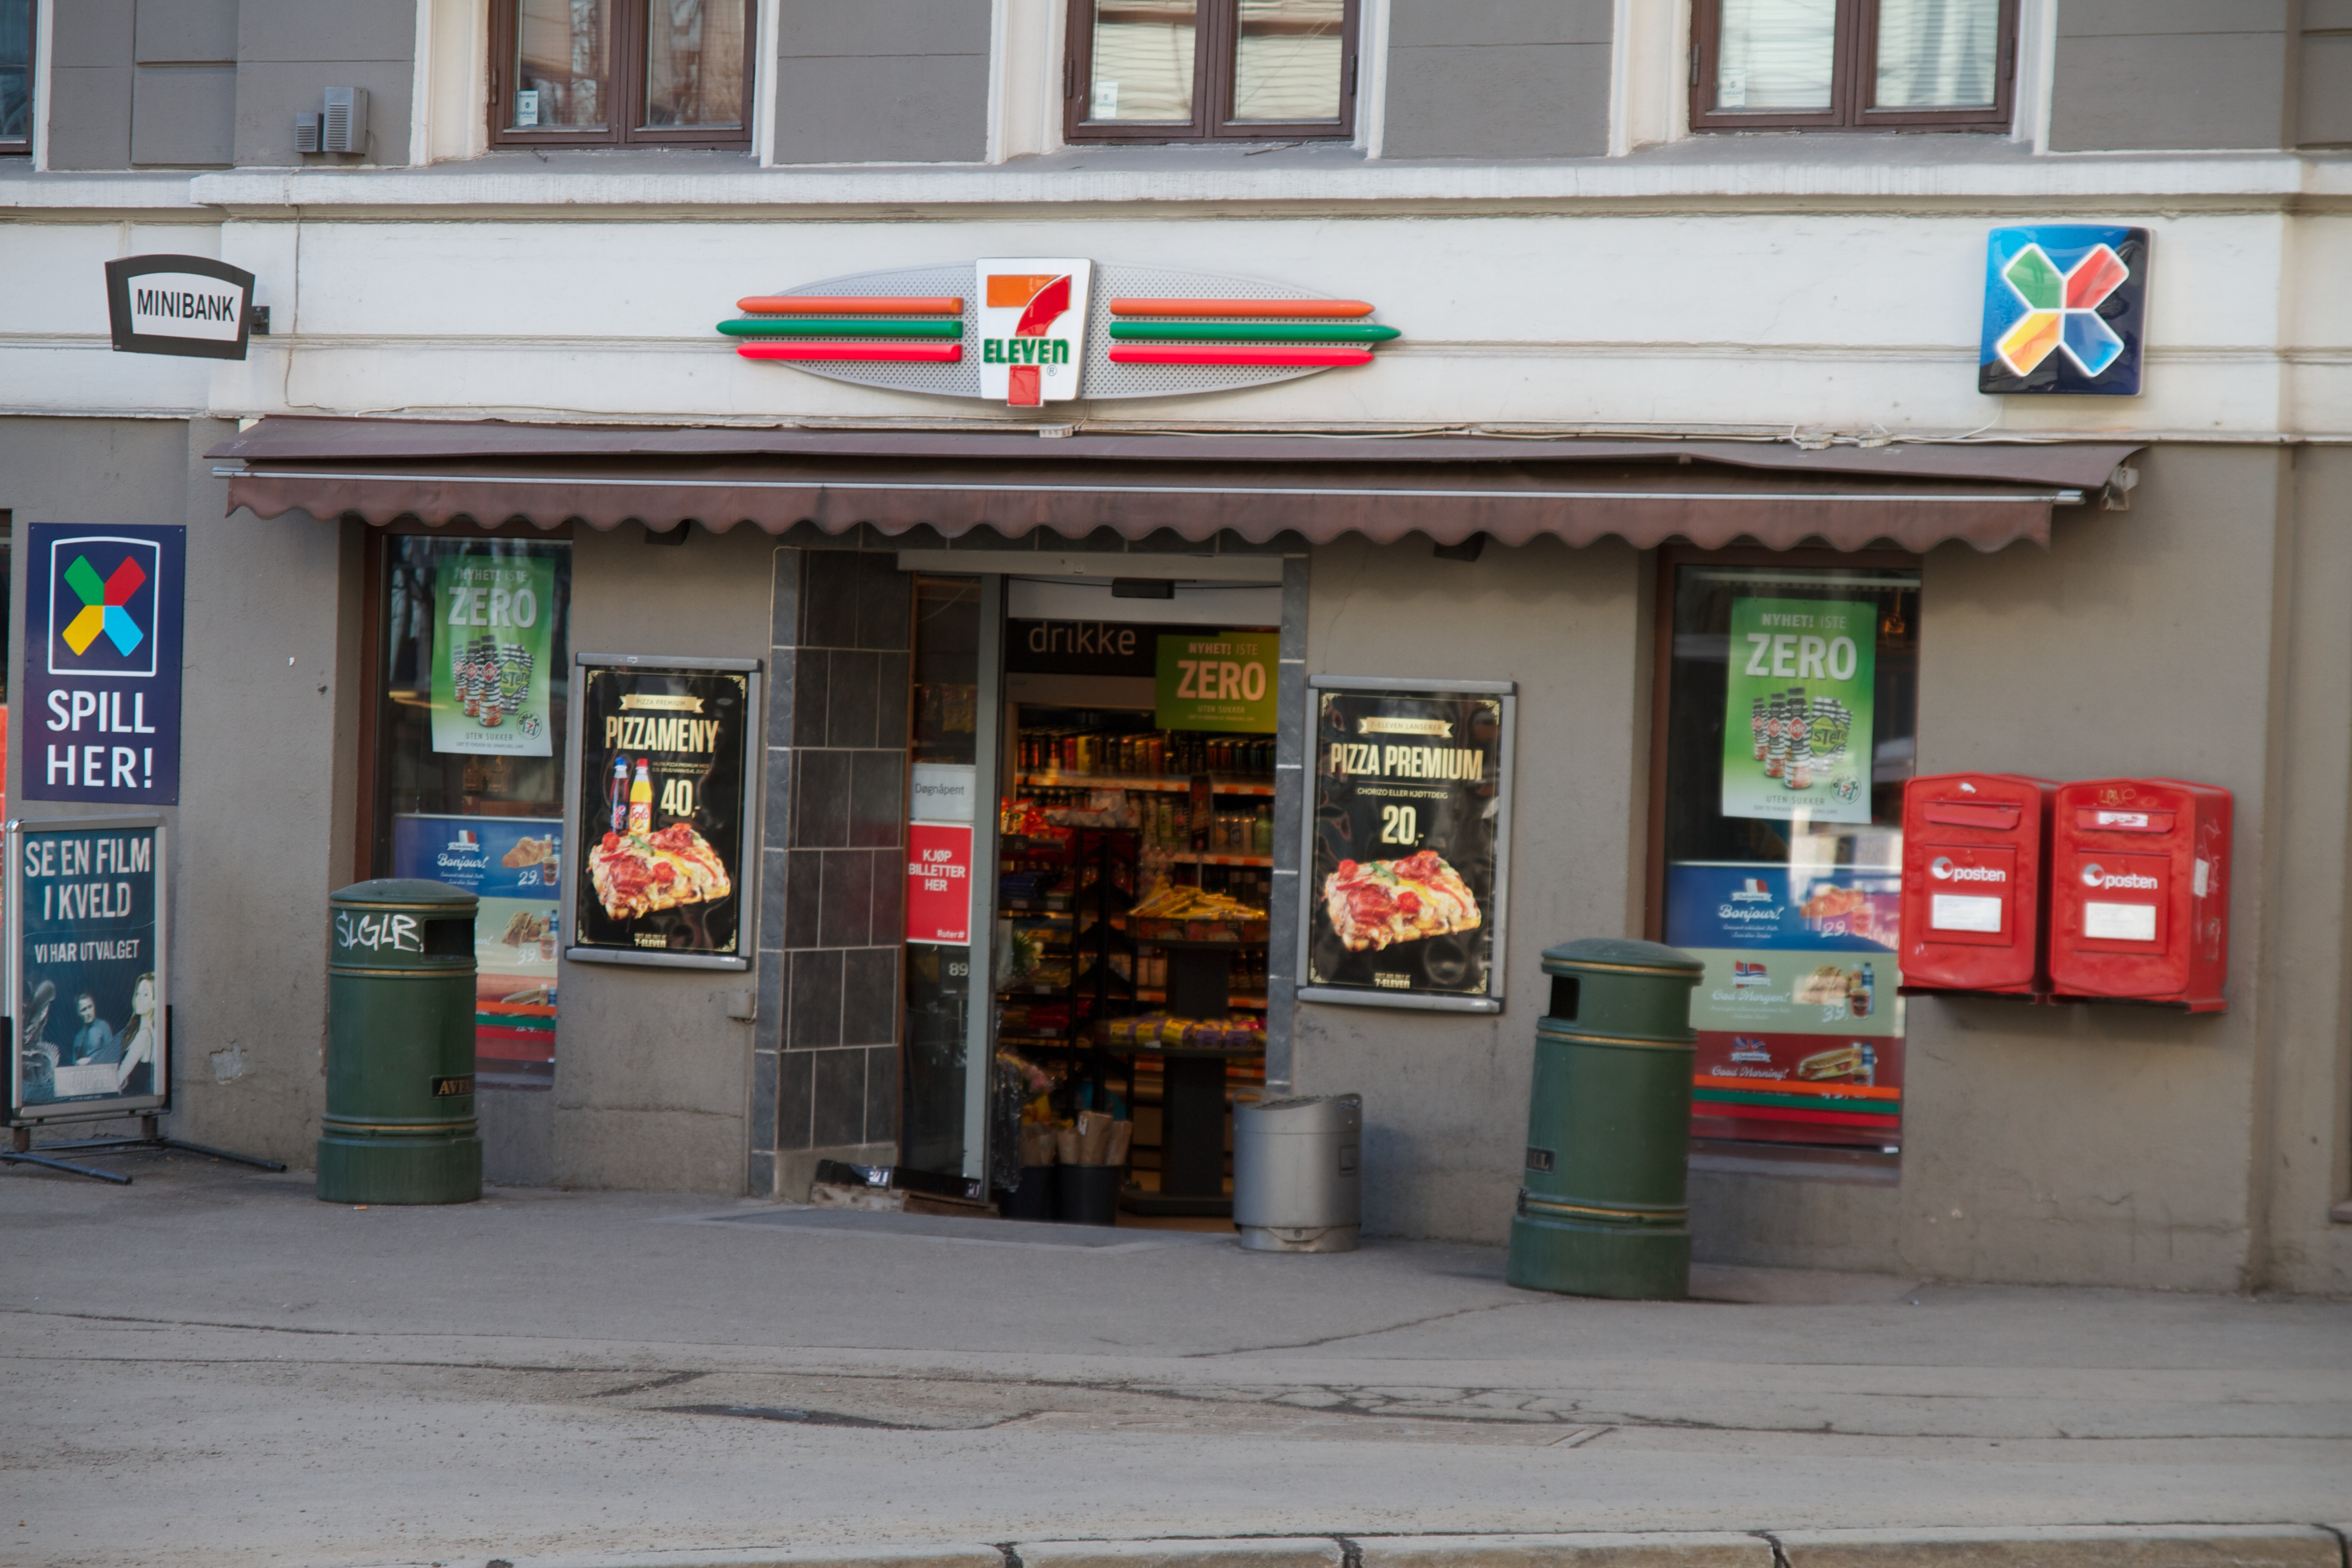 File 7 Eleven Holbergs Plass Oslo 2013 03 31 At 16 13 34